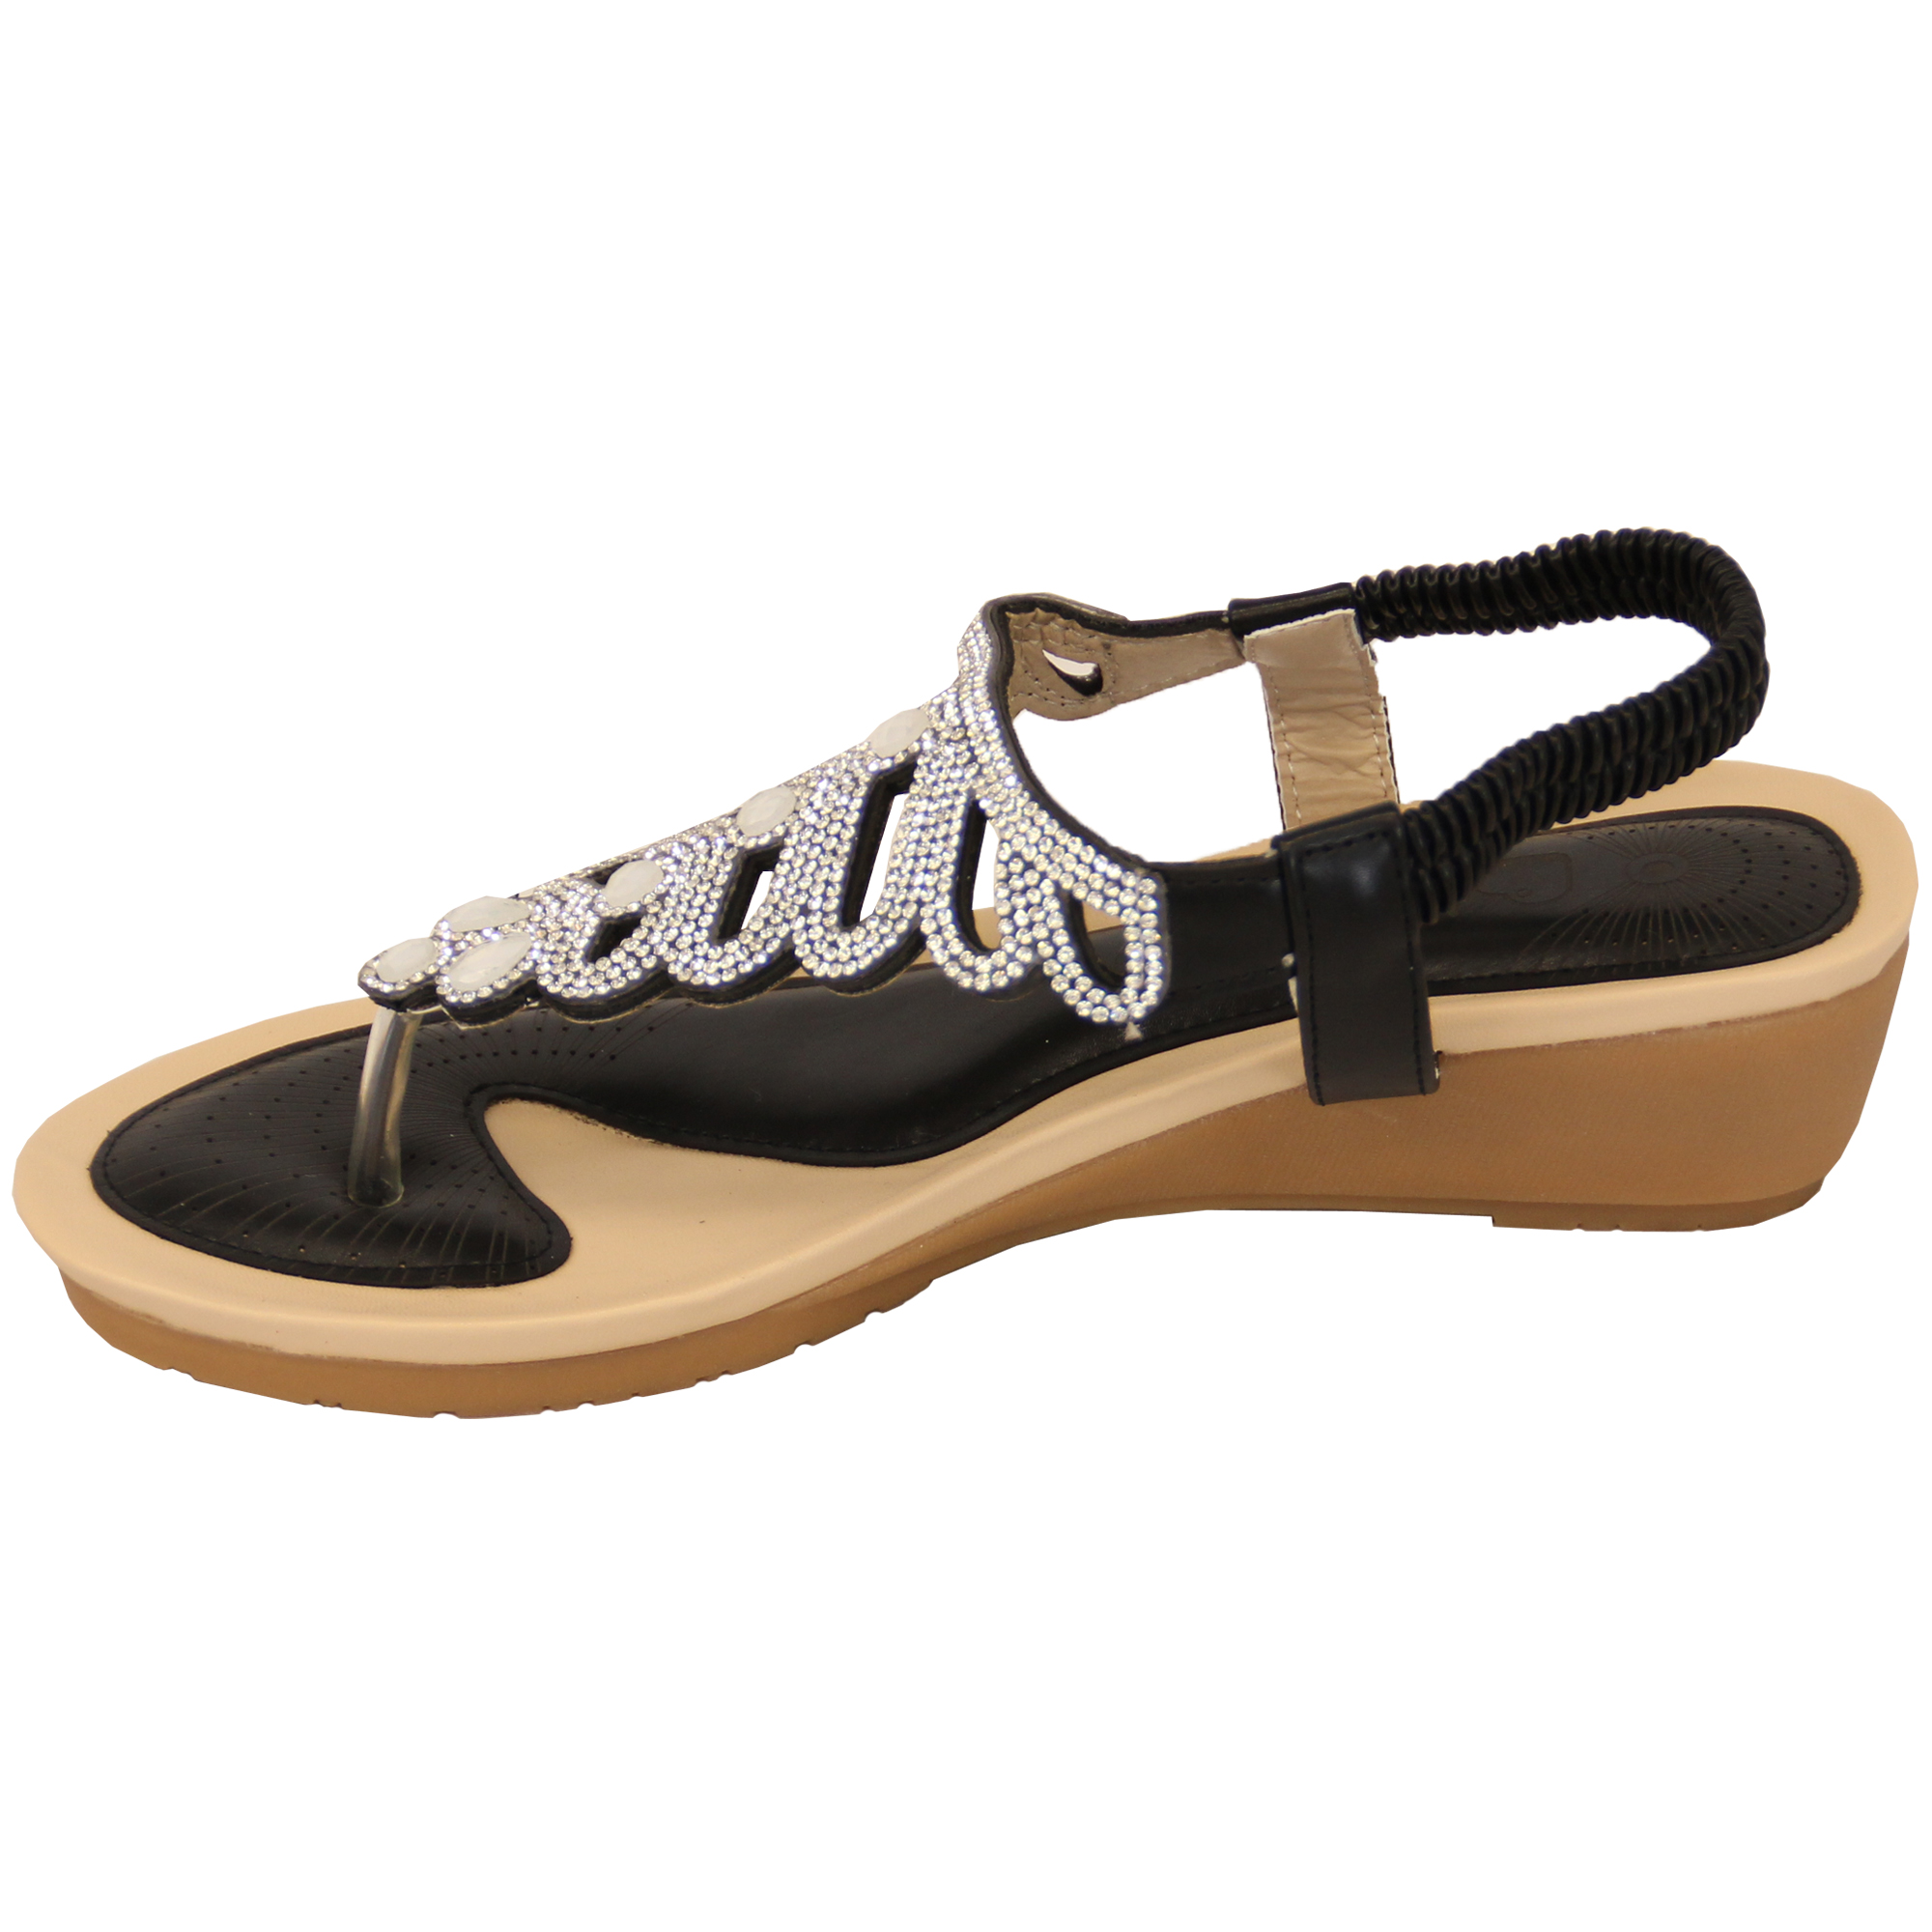 Shop Women's Shoes at dexterminduwi.ga for a timeless collection of women's sandals, flats, heels, sneakers & more. Get your next favorite pair of women's shoes here.